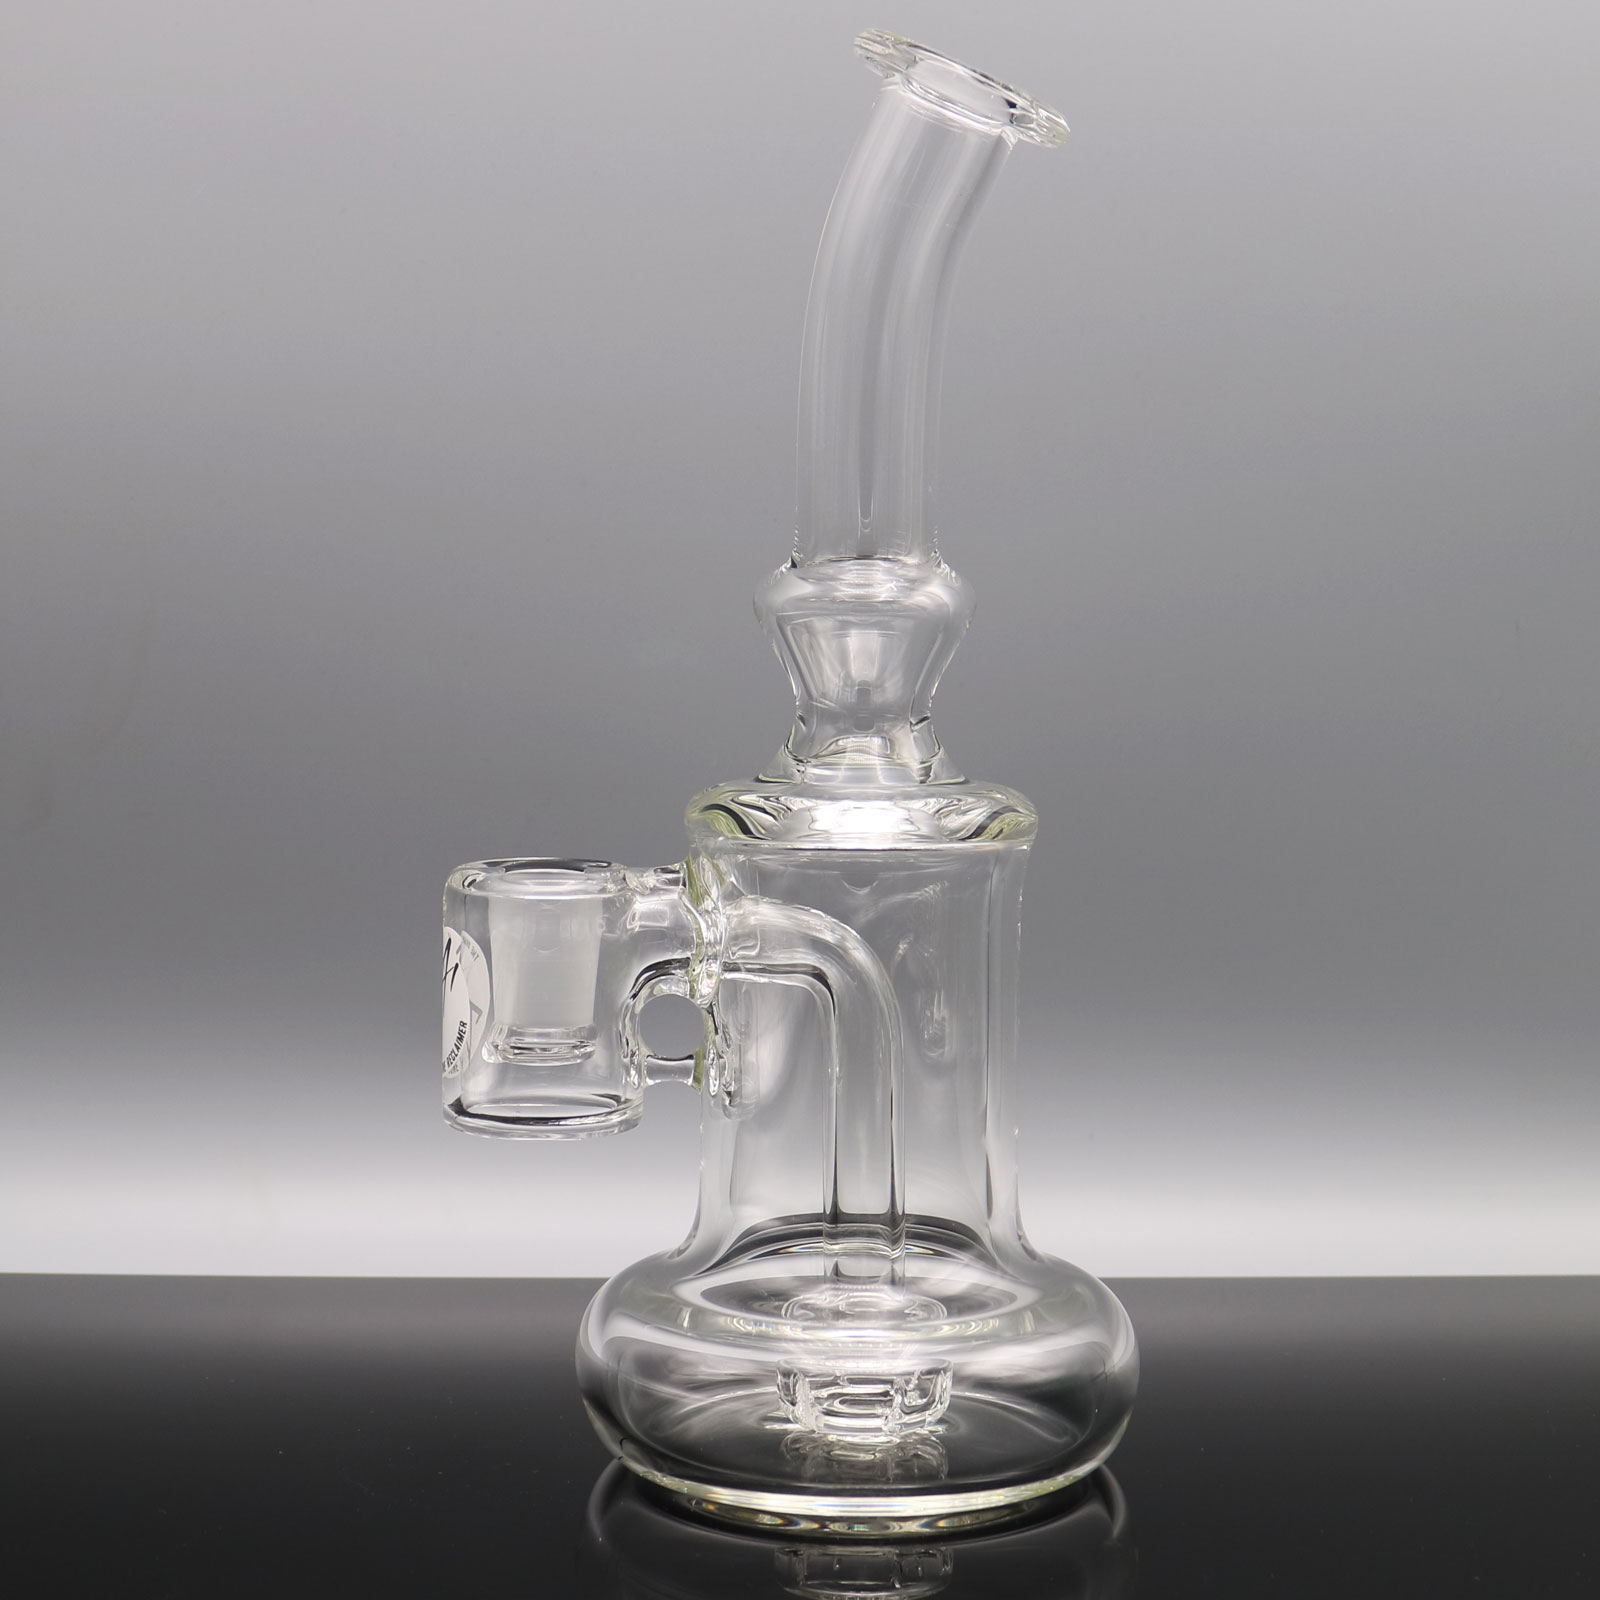 Jeff Patterson – Large Clear Silicone Reclaimer Rig